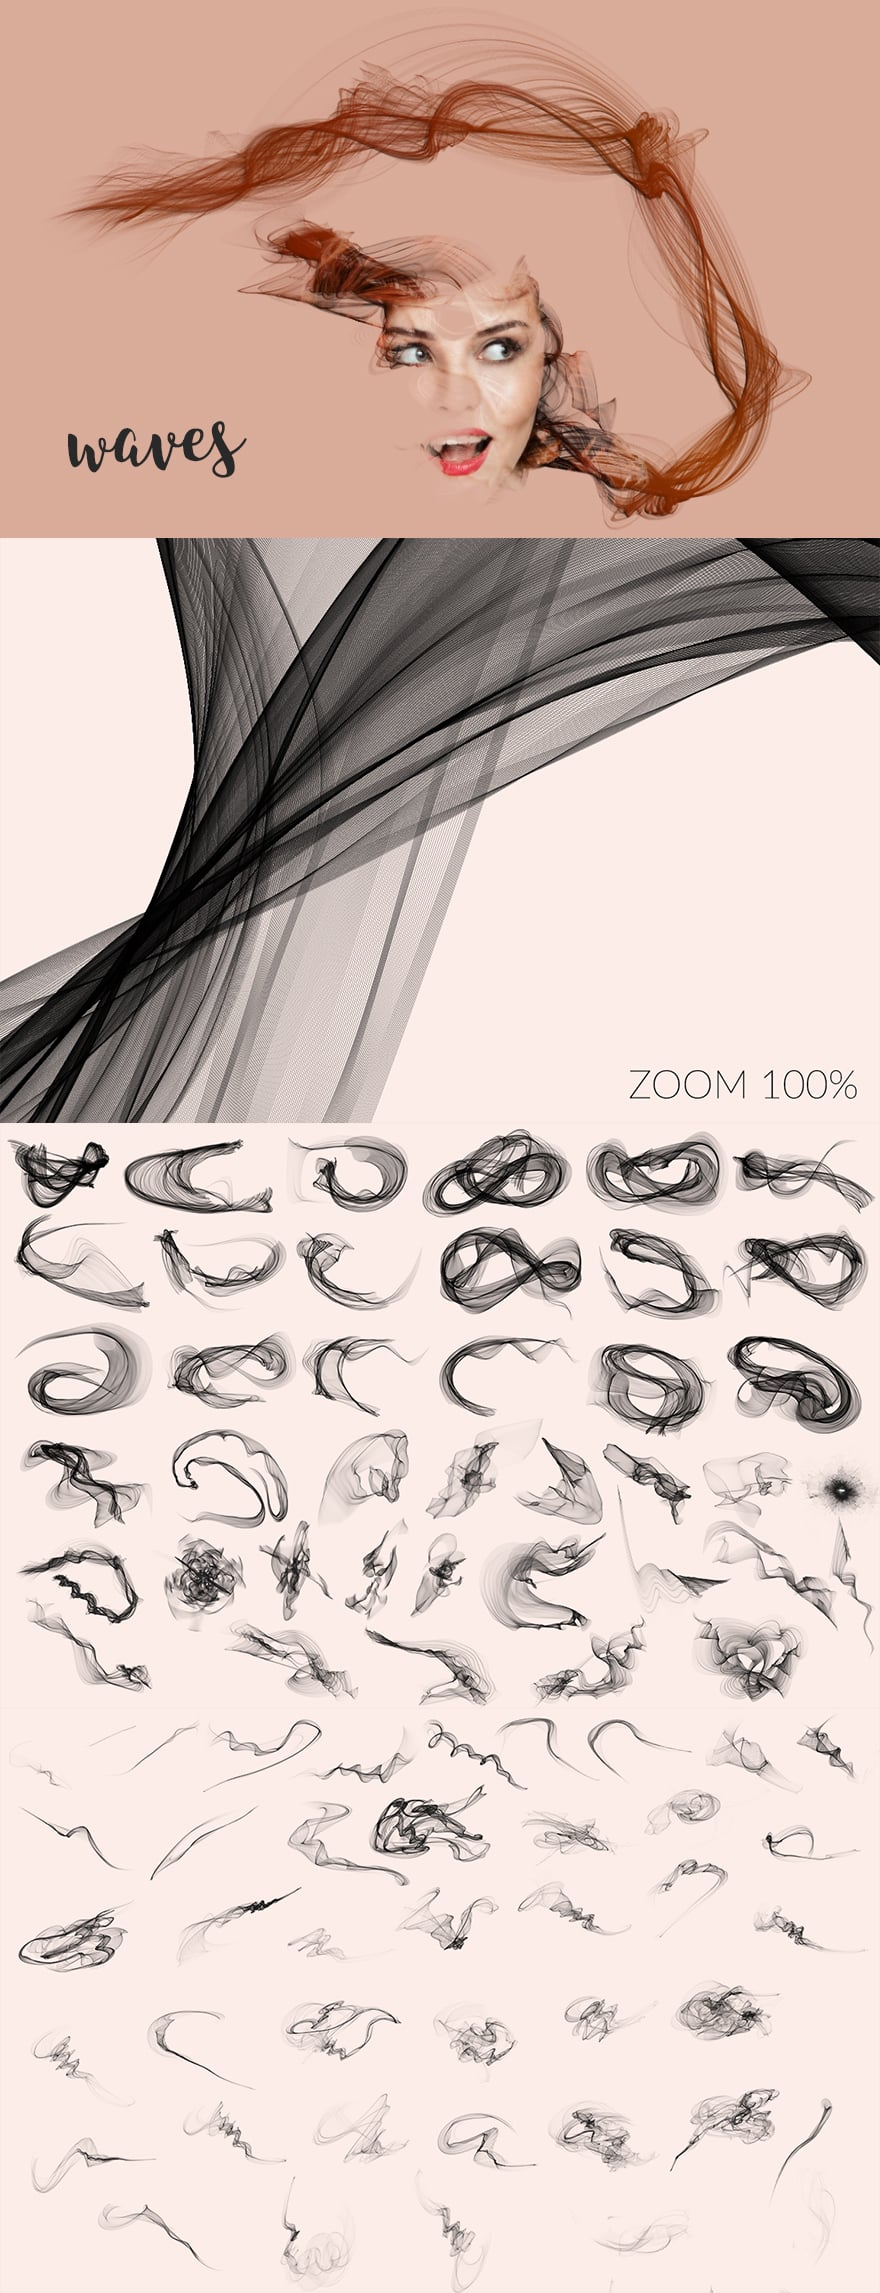 1053 Spectacular Overlays png - Only $18! - 15 Waves